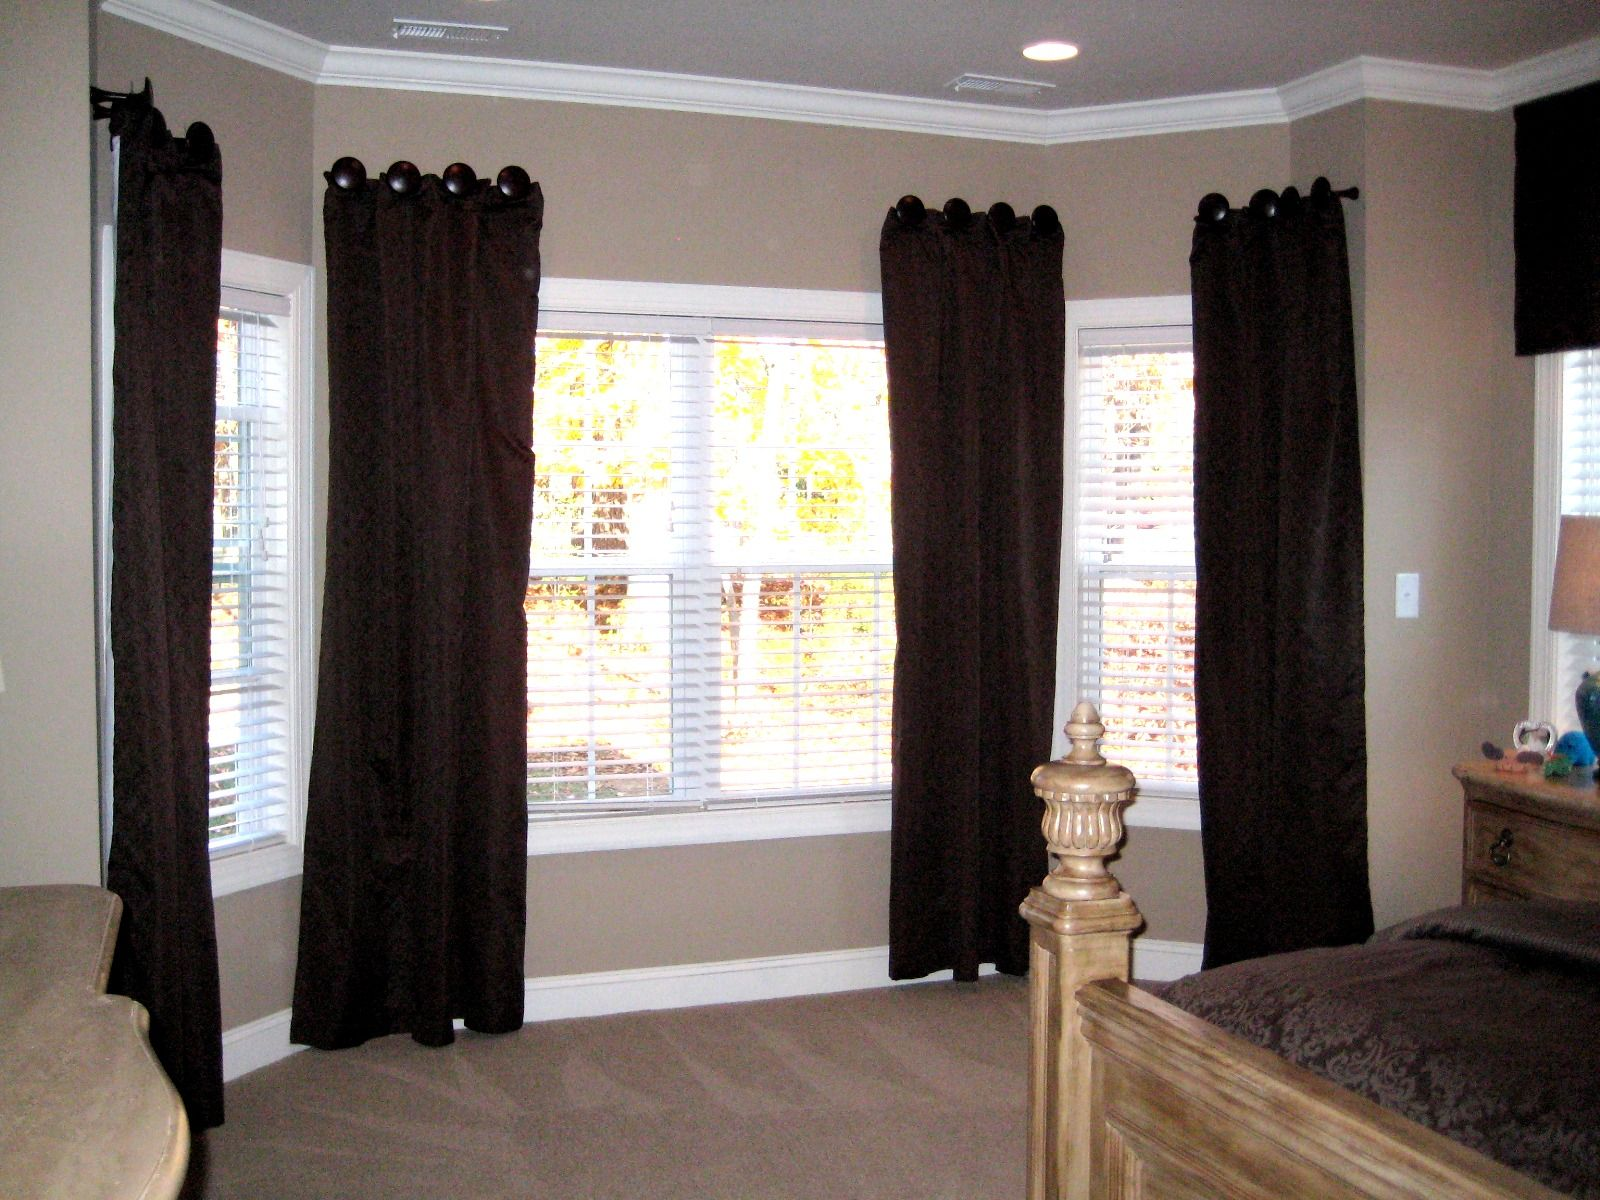 Curtain valances for windows and rods - Bay Window Window Treatments Window Treatments For Bay Windows Luxury Kitchen Window Treatments Window Rodsbay Window Curtainskitchen